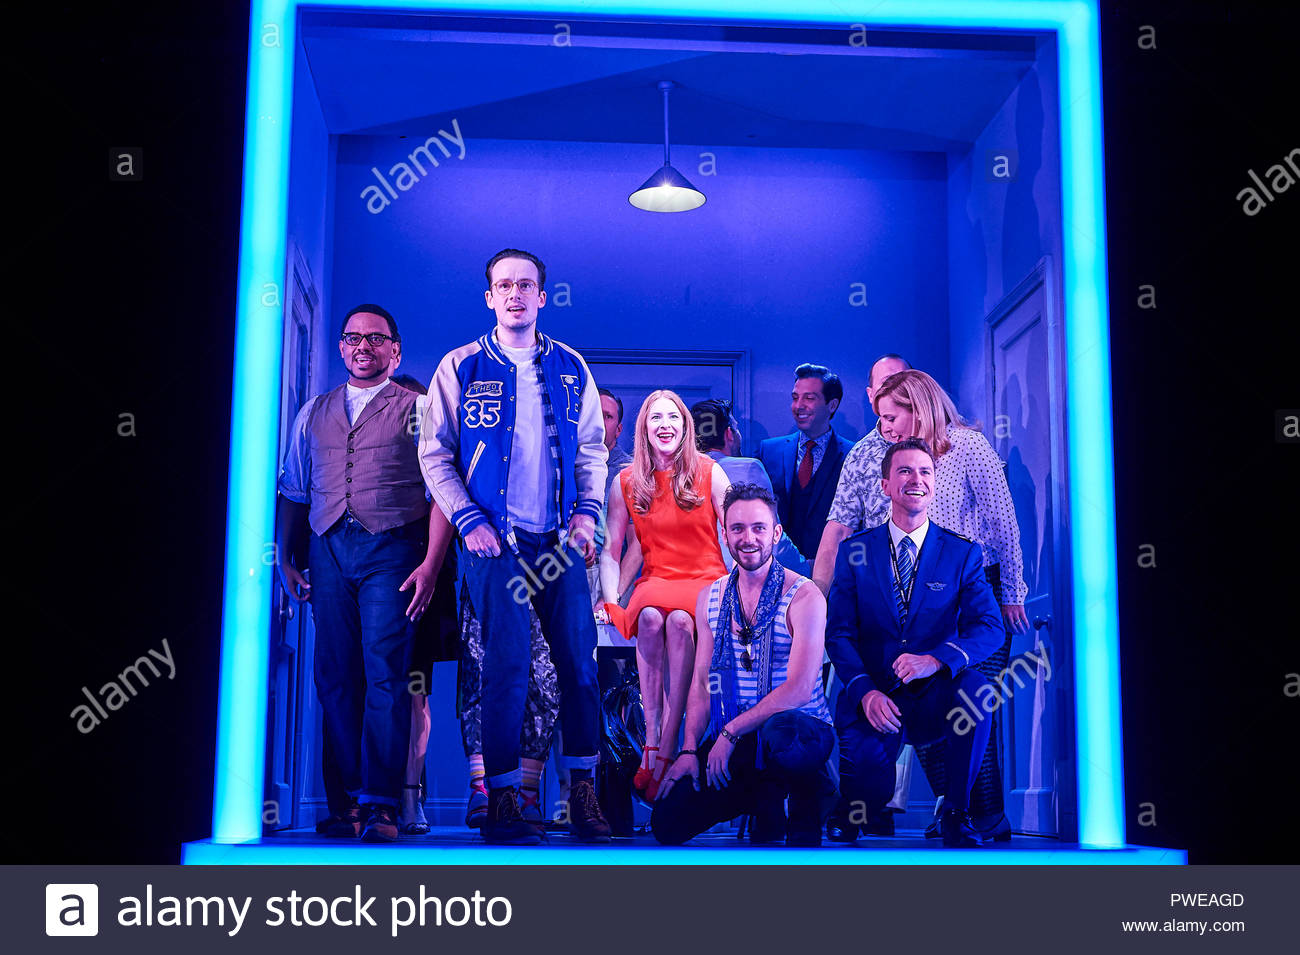 London, UK, 16th Oct 2018. Company, a Musical Comedy, Music and Lyrics by Stephen Sondheim, book by George Furth. Directed by Marianne Elliott. With Rosalie Craig as Bobbie[RED DRESS]. Opens at The Gielgud Theatre on 17/10/18. CREDIT Geraint Lewis EDITORIAL USE ONLY Credit: Geraint Lewis/Alamy Live News - Stock Image